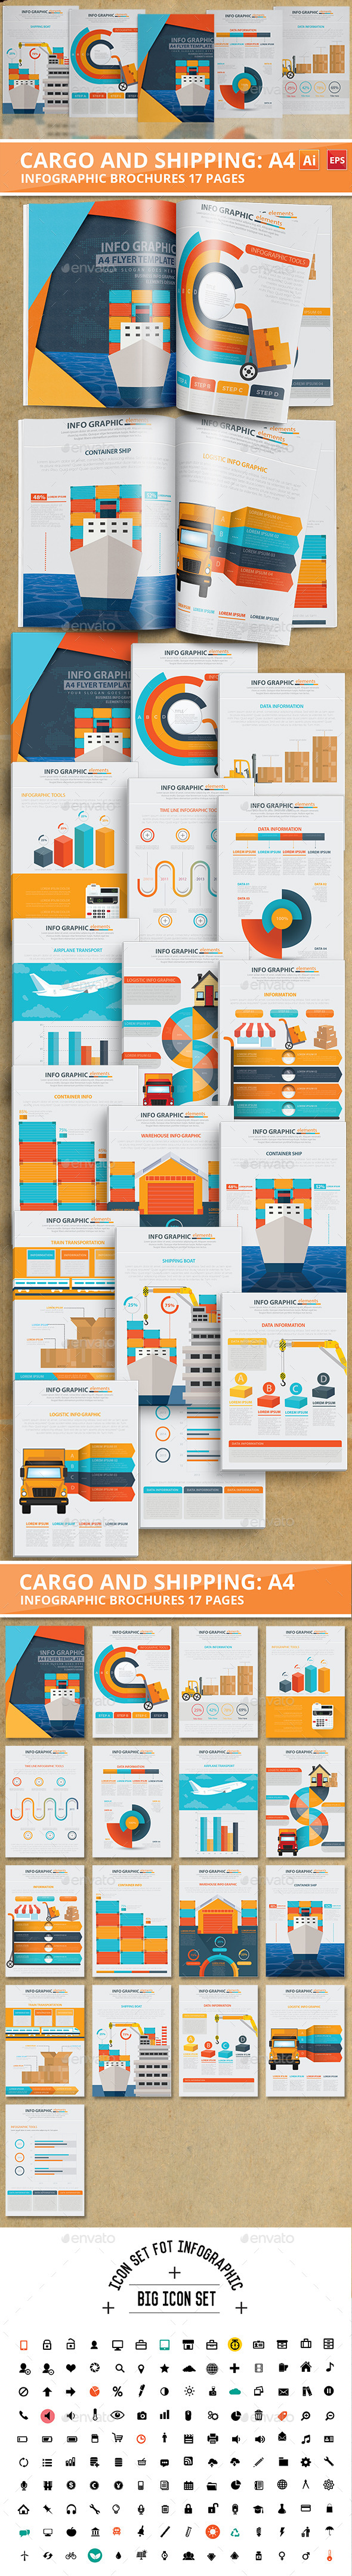 Cargo And Shipping Info graphic 17 Pages Design - Infographics